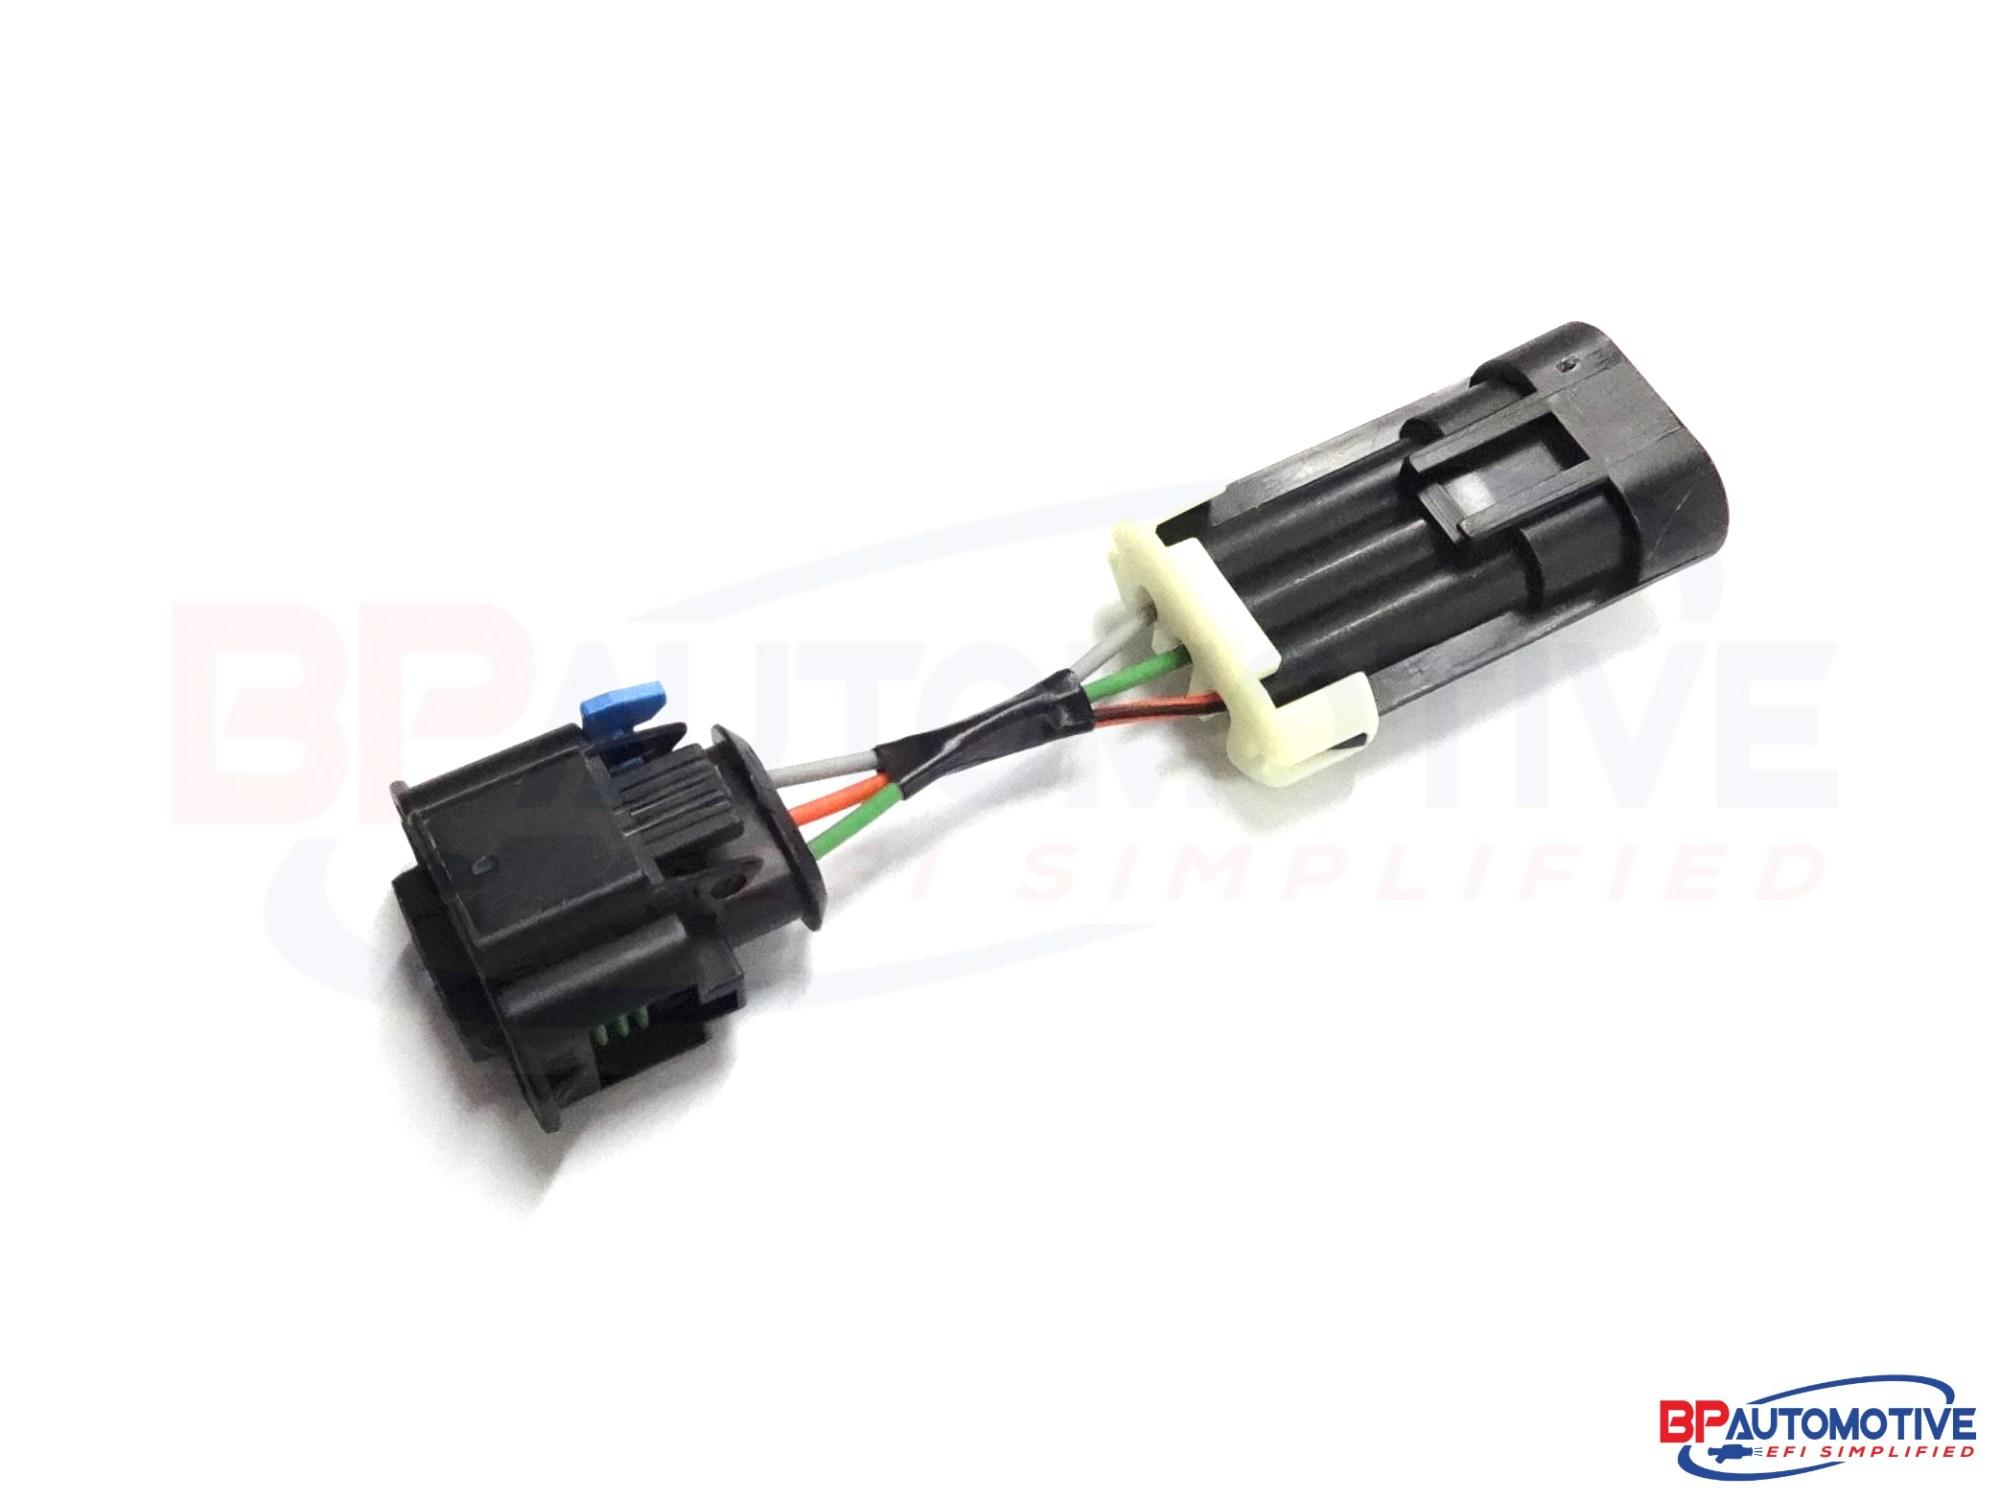 hight resolution of ls2 to ls3 ls9 lsa map sensor adapter map sensor pigtail wiring diagram